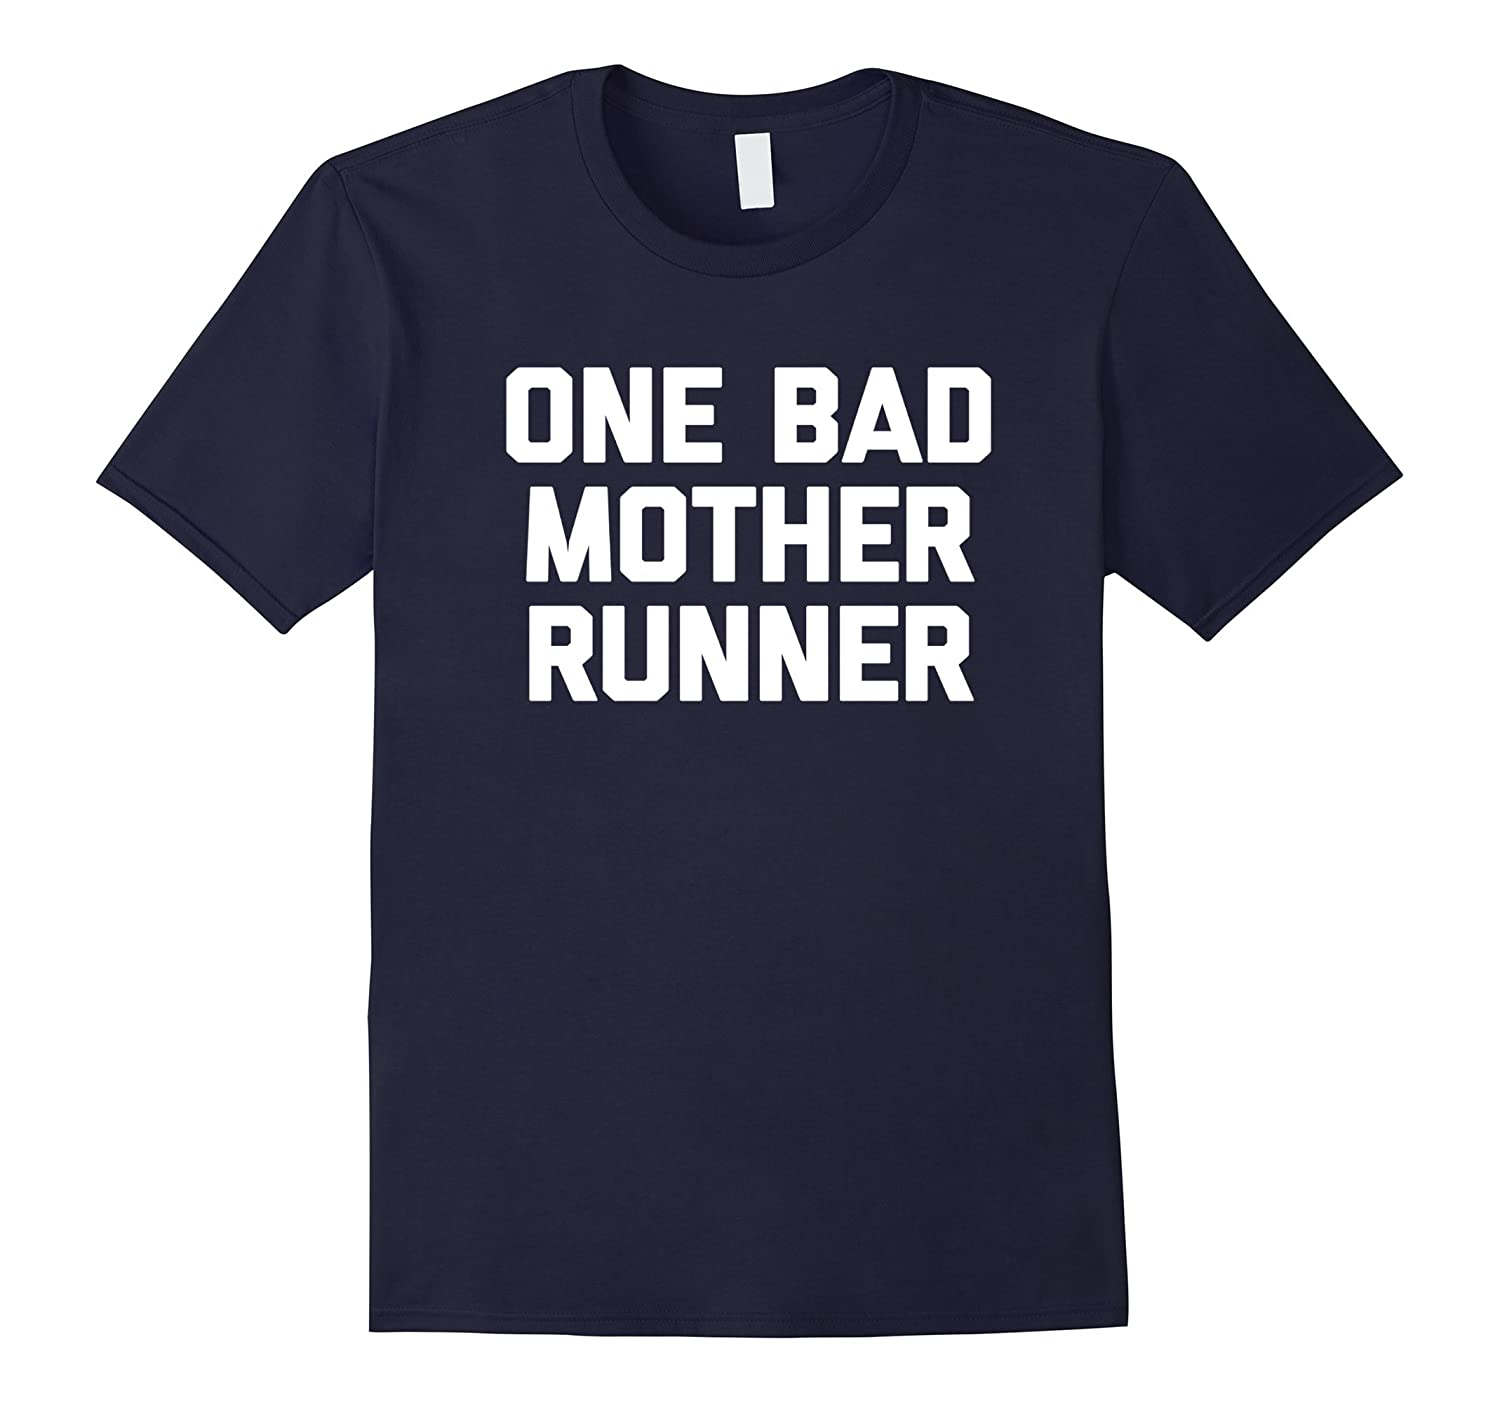 One Bad Mother Runner T-Shirt funny saying sarcastic novelty-TH